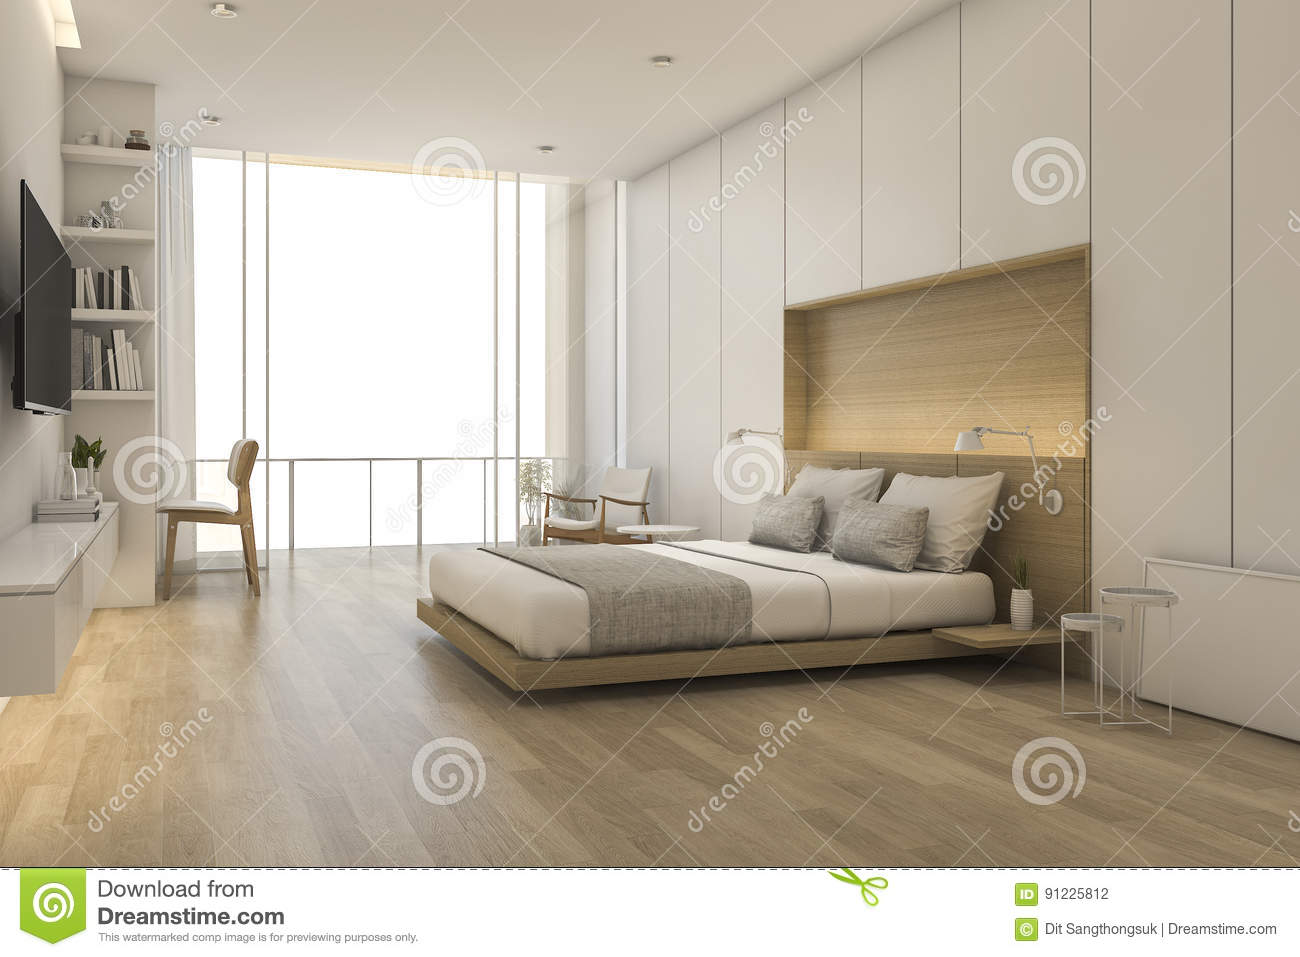 Download 3d Rendering Wood Minimal Style Bedroom With View From Window  Stock Illustration   Illustration Of